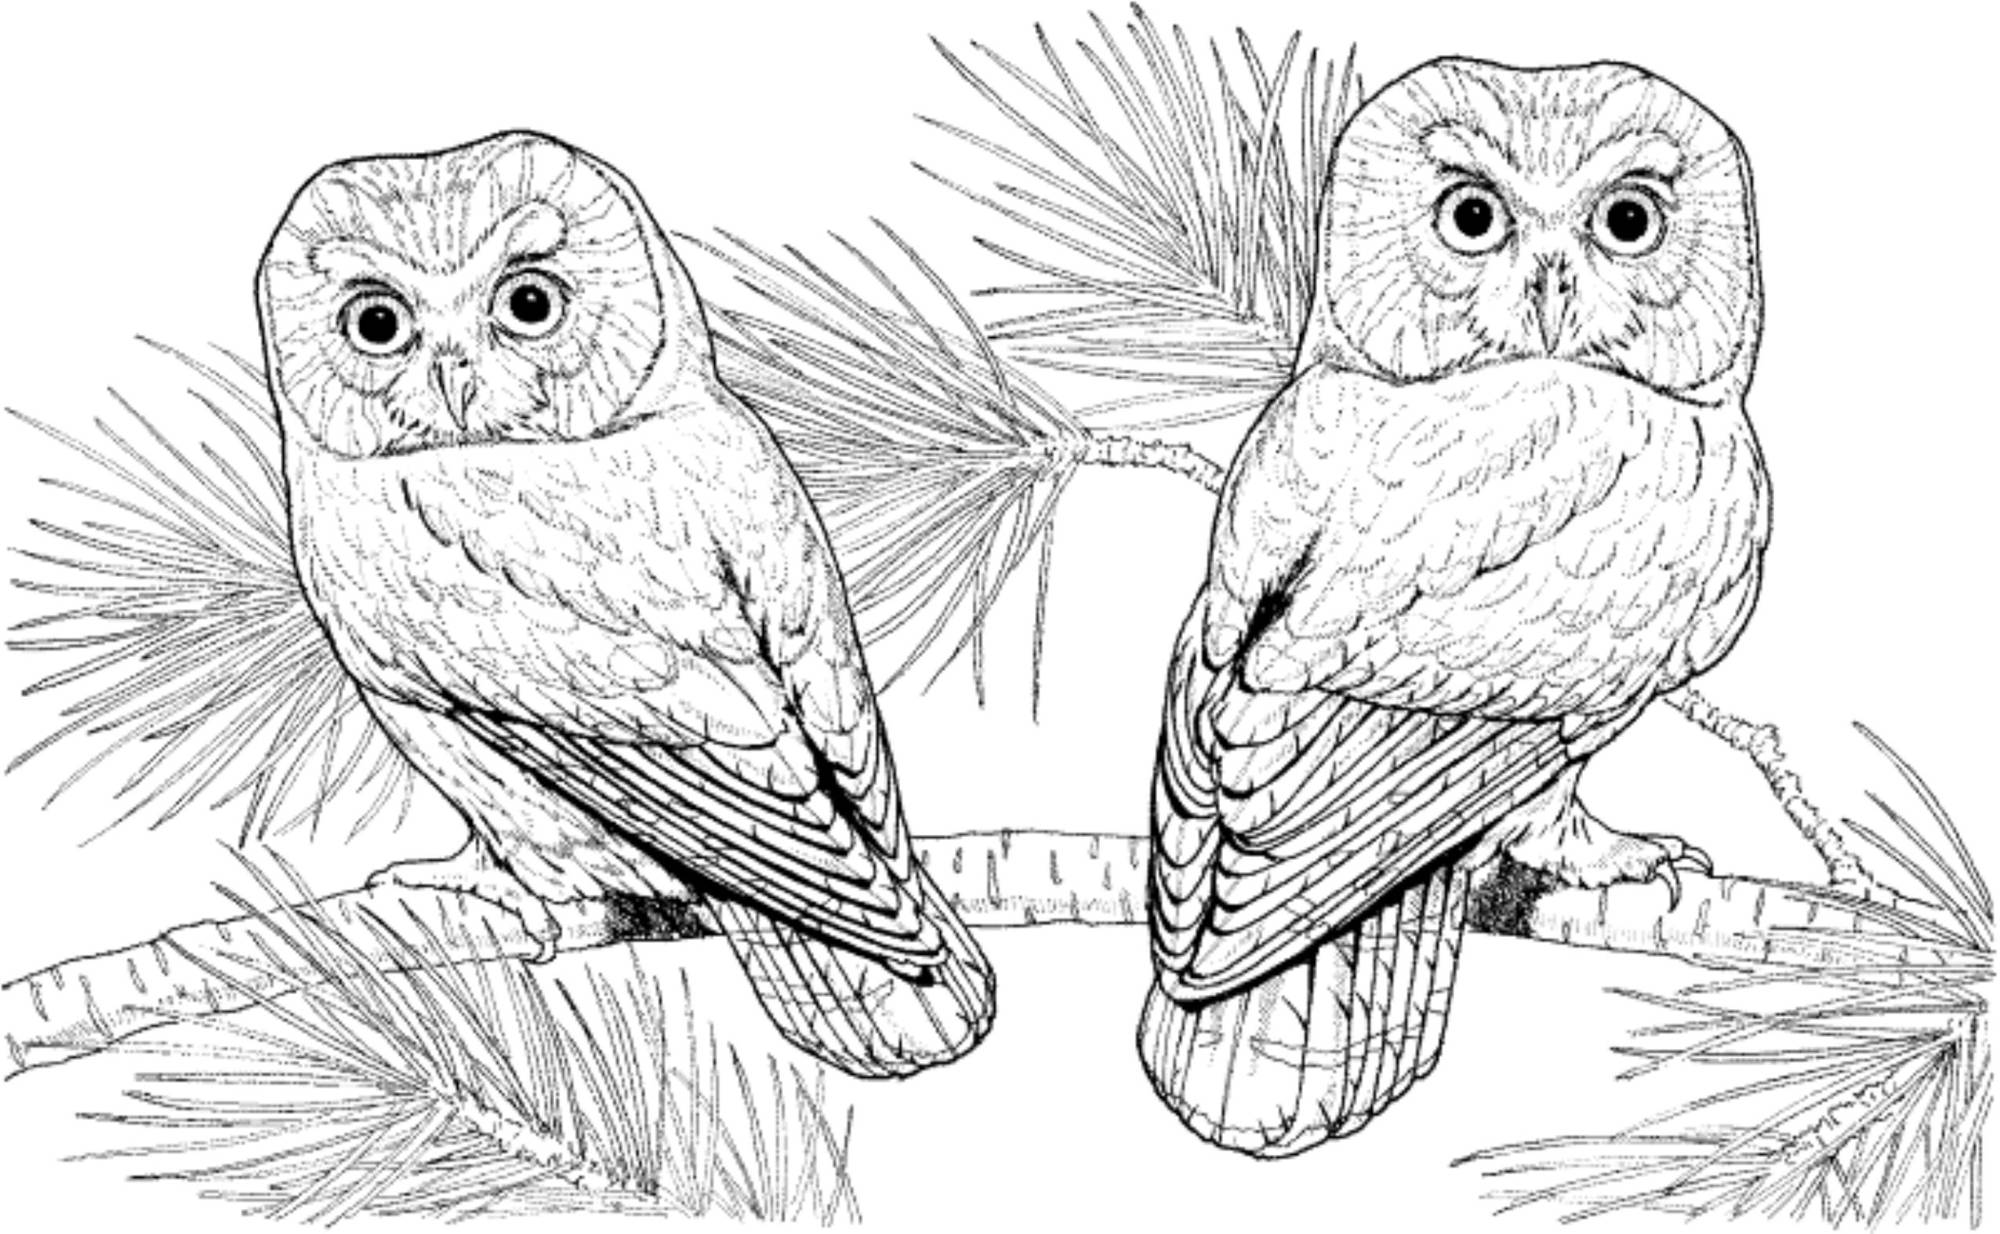 Print & Download - Owl Coloring Pages for Your Kids